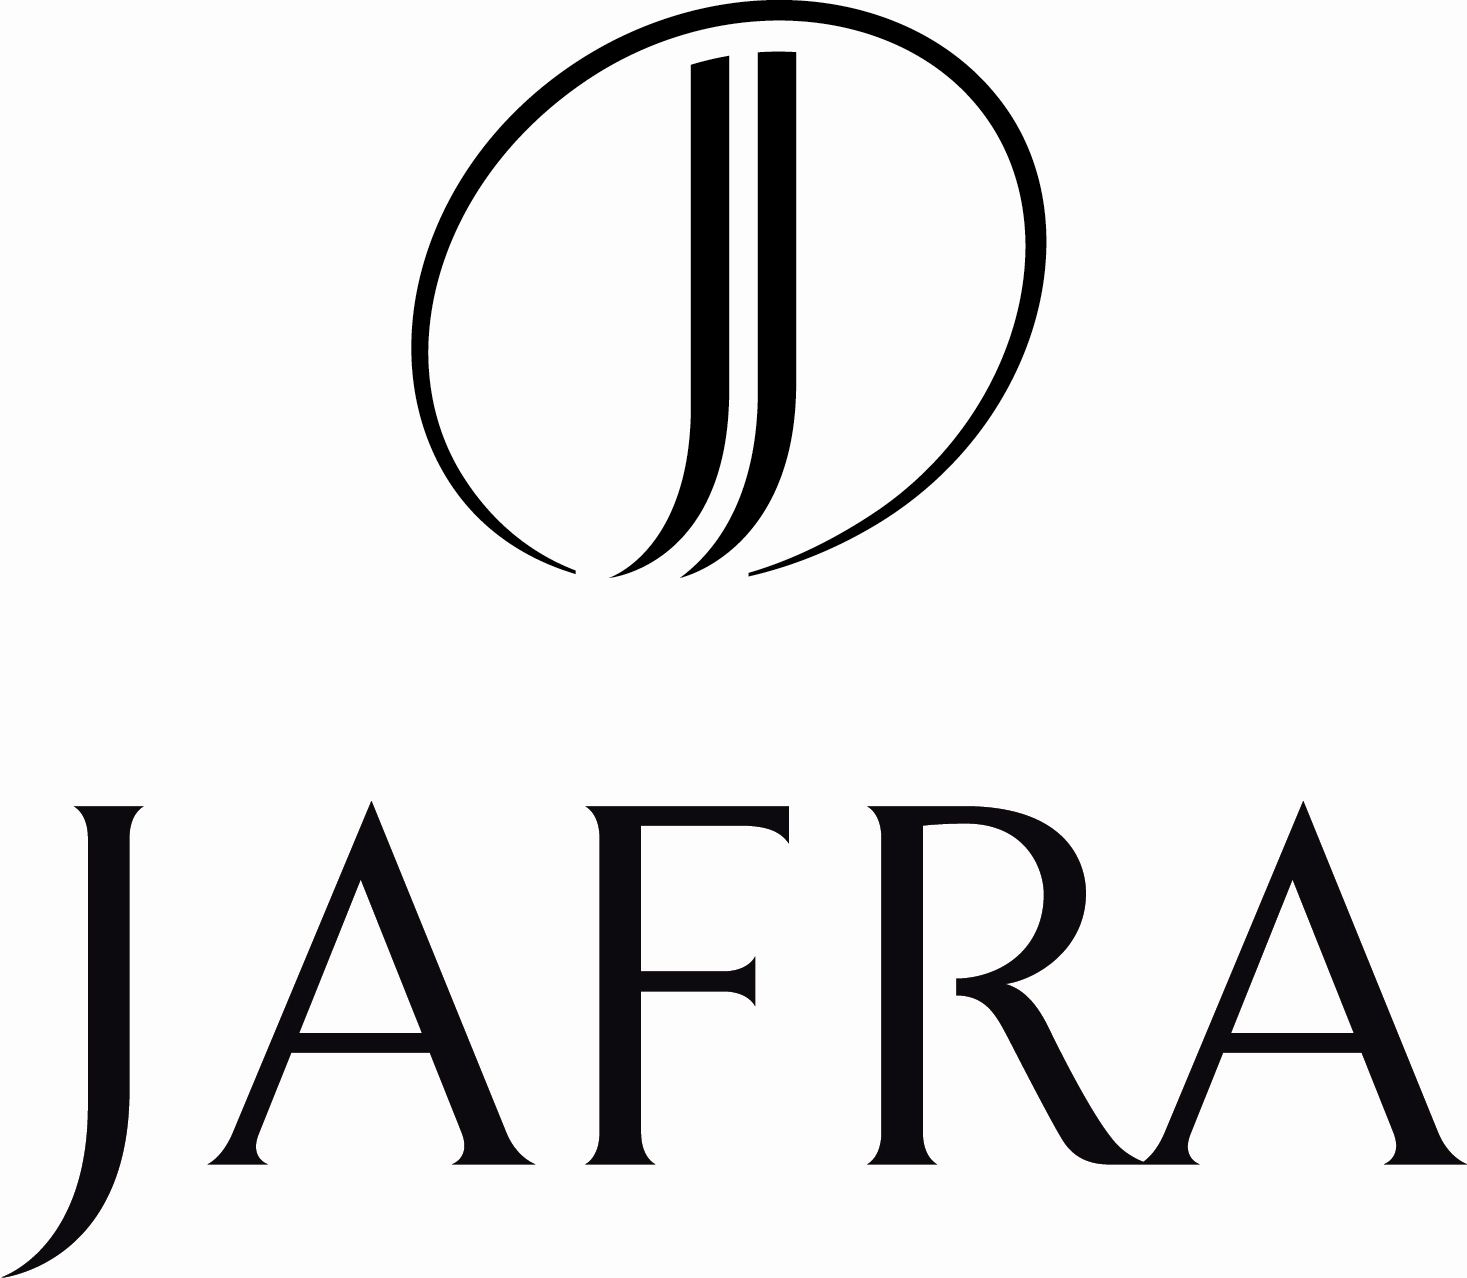 Jafra perfumes group picture image by tag keywordpictures com - Jafra Skincare Do You Want To See Jafra Skincare Reviewed On Beautypedia Comment